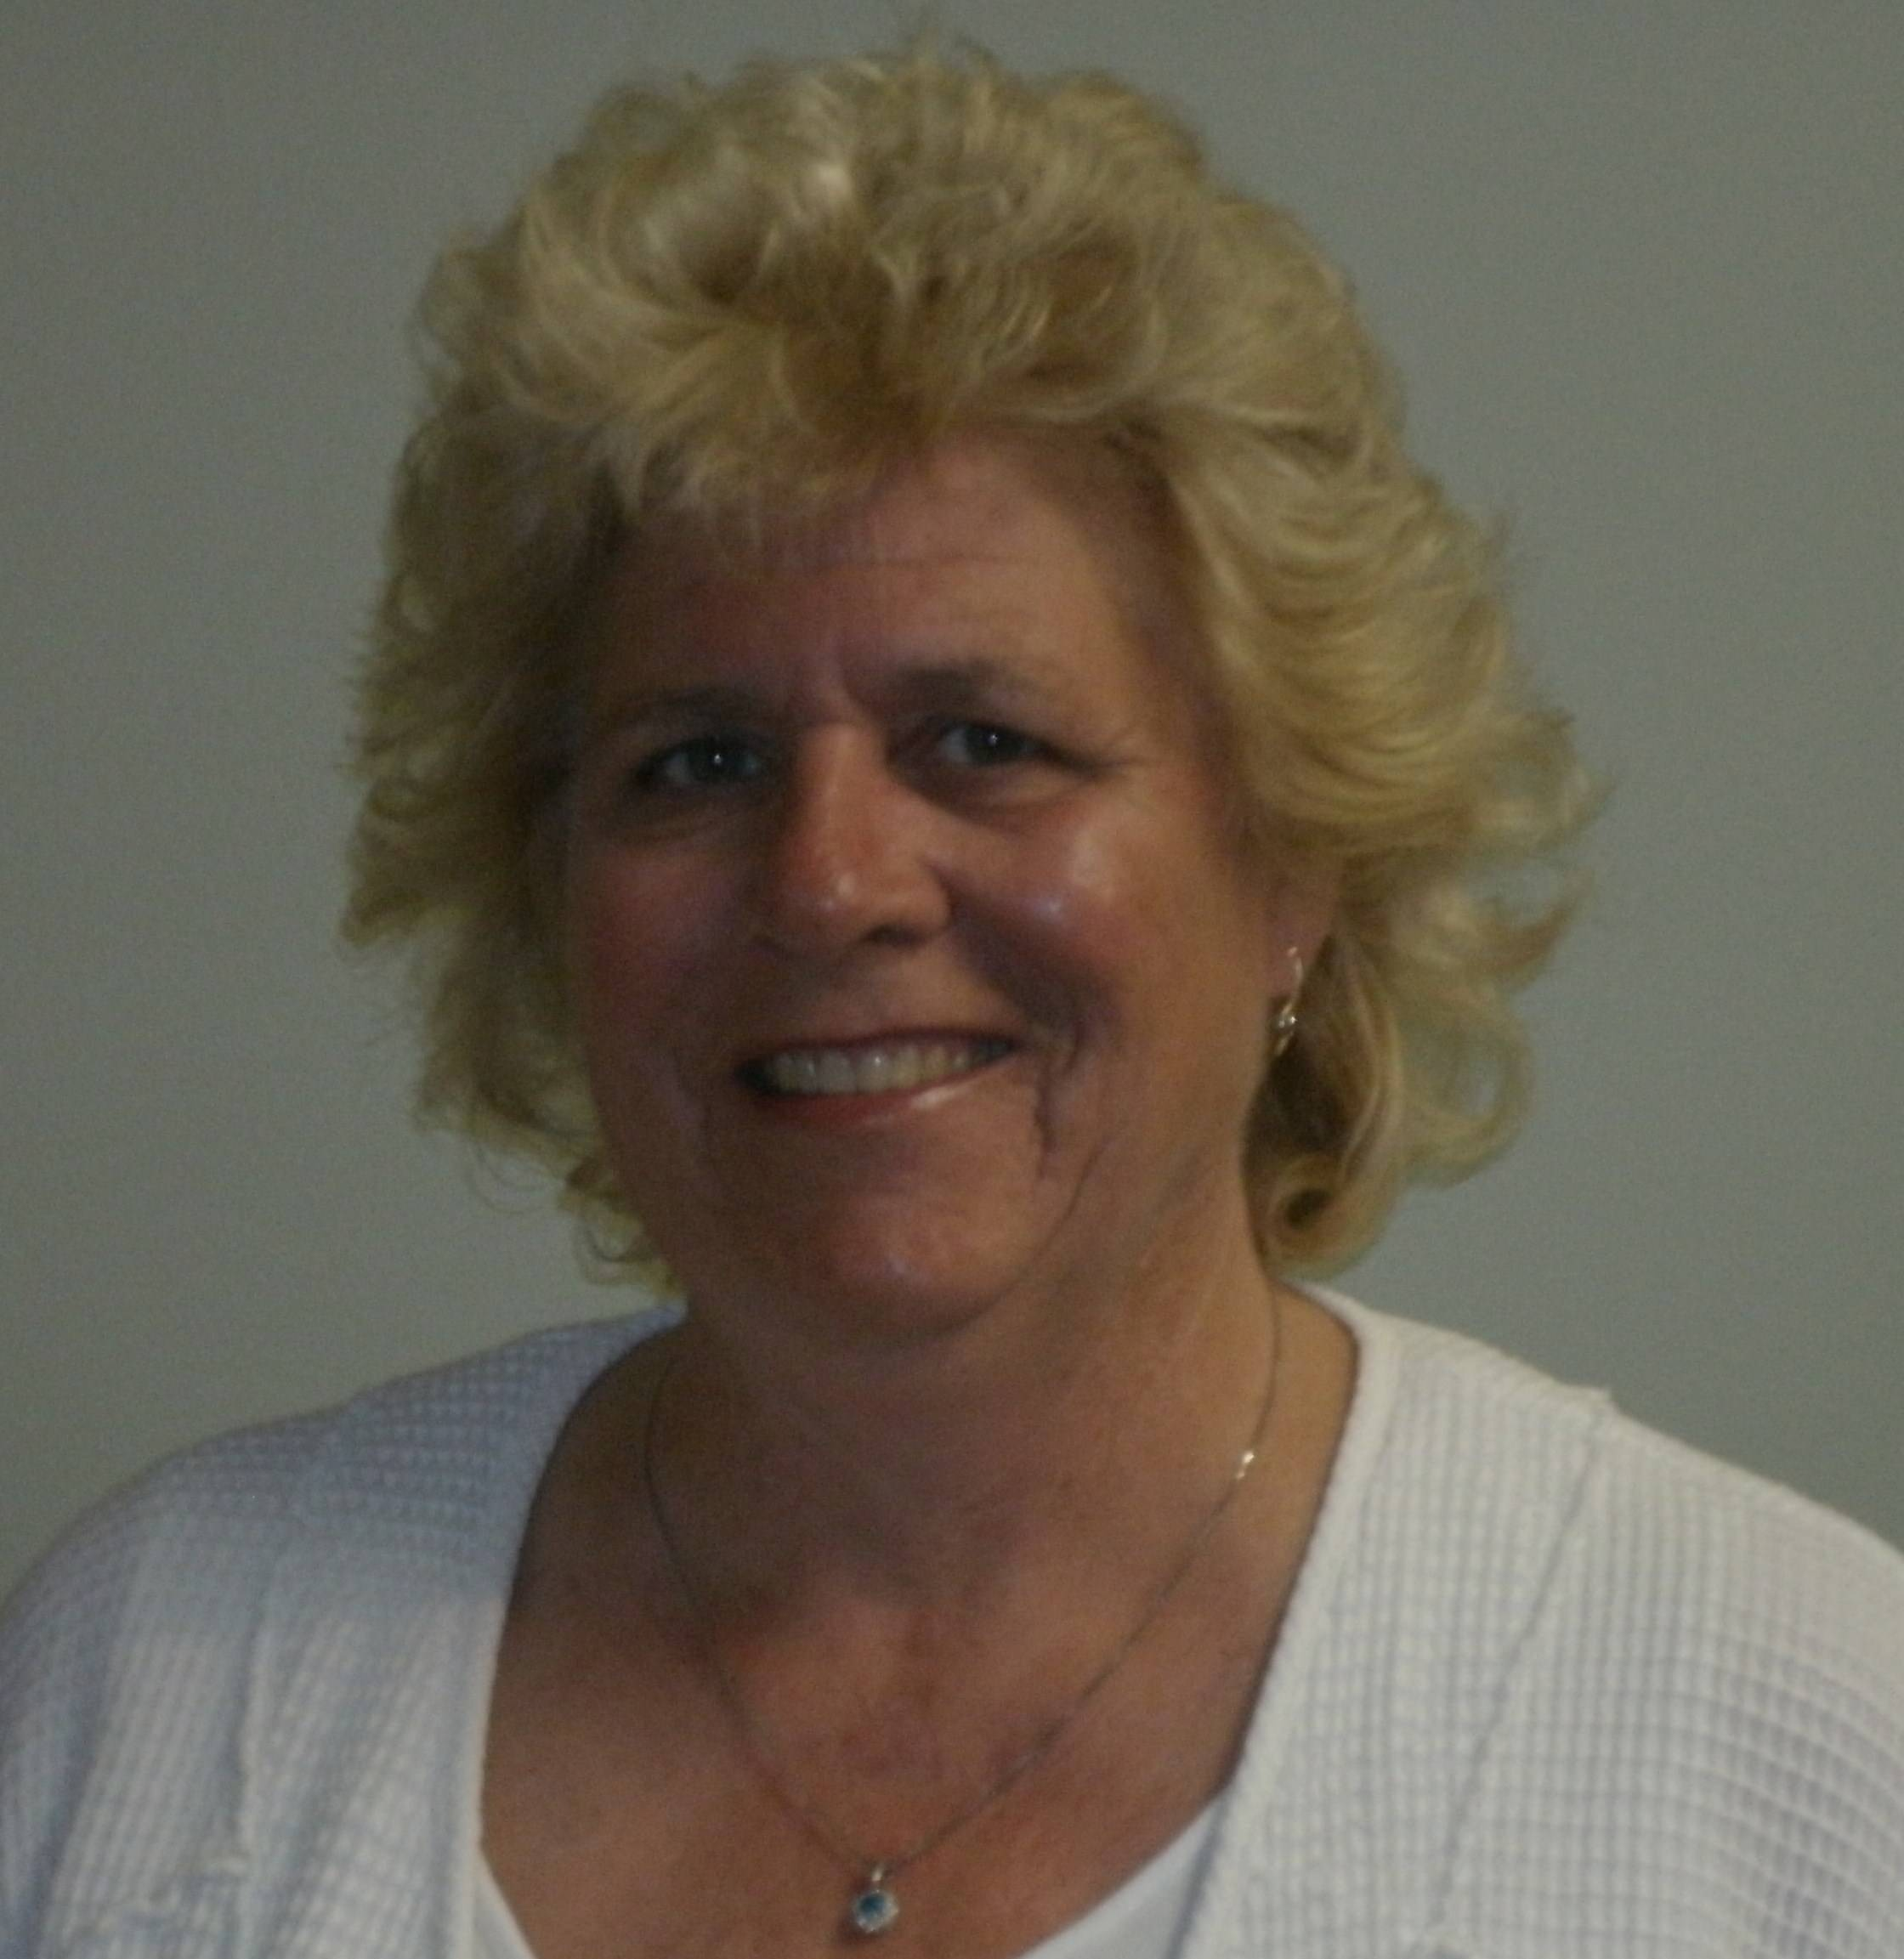 Denise LaCure, running for Geneva Township Assessor (4-year Term)